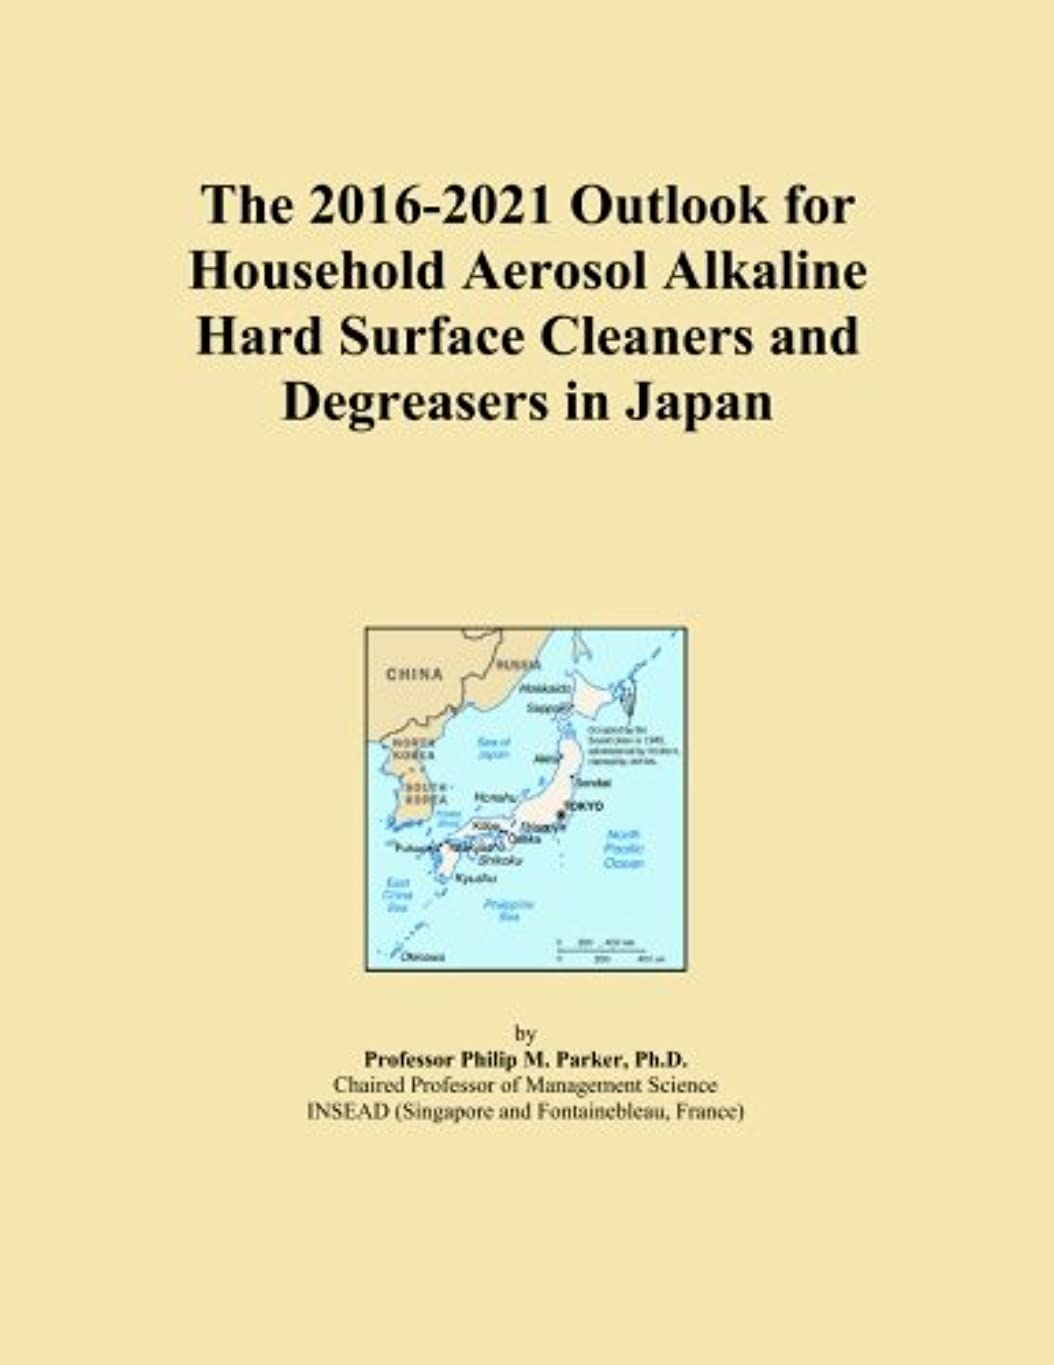 ヒゲ降雨苗The 2016-2021 Outlook for Household Aerosol Alkaline Hard Surface Cleaners and Degreasers in Japan